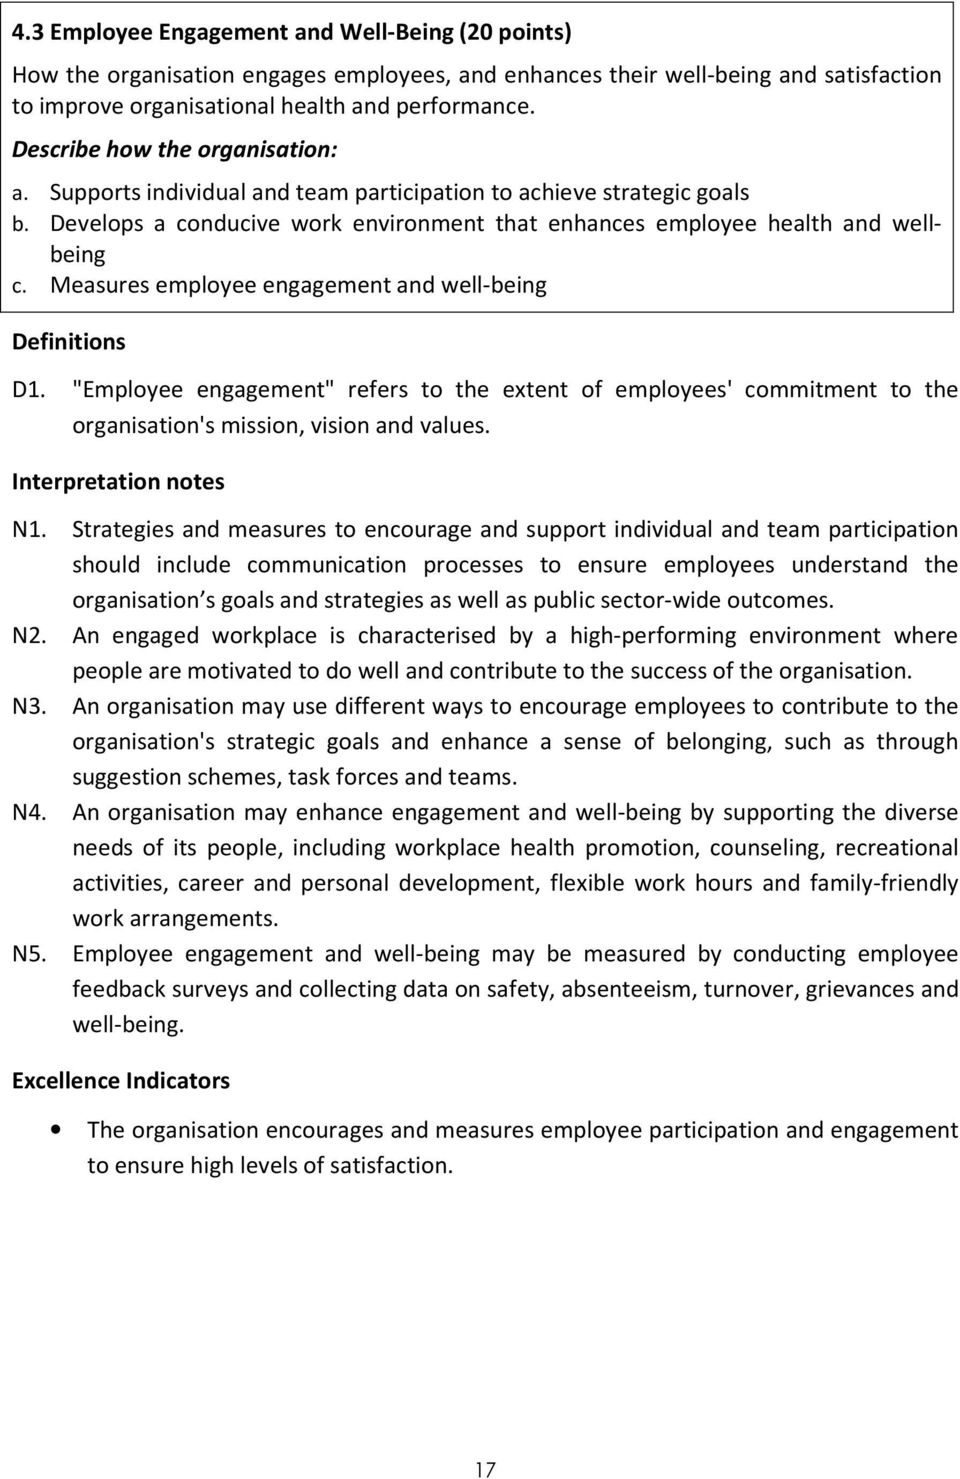 """Employee engagement"" refers to the extent of employees' commitment to the organisation's mission, vision and values. N1."